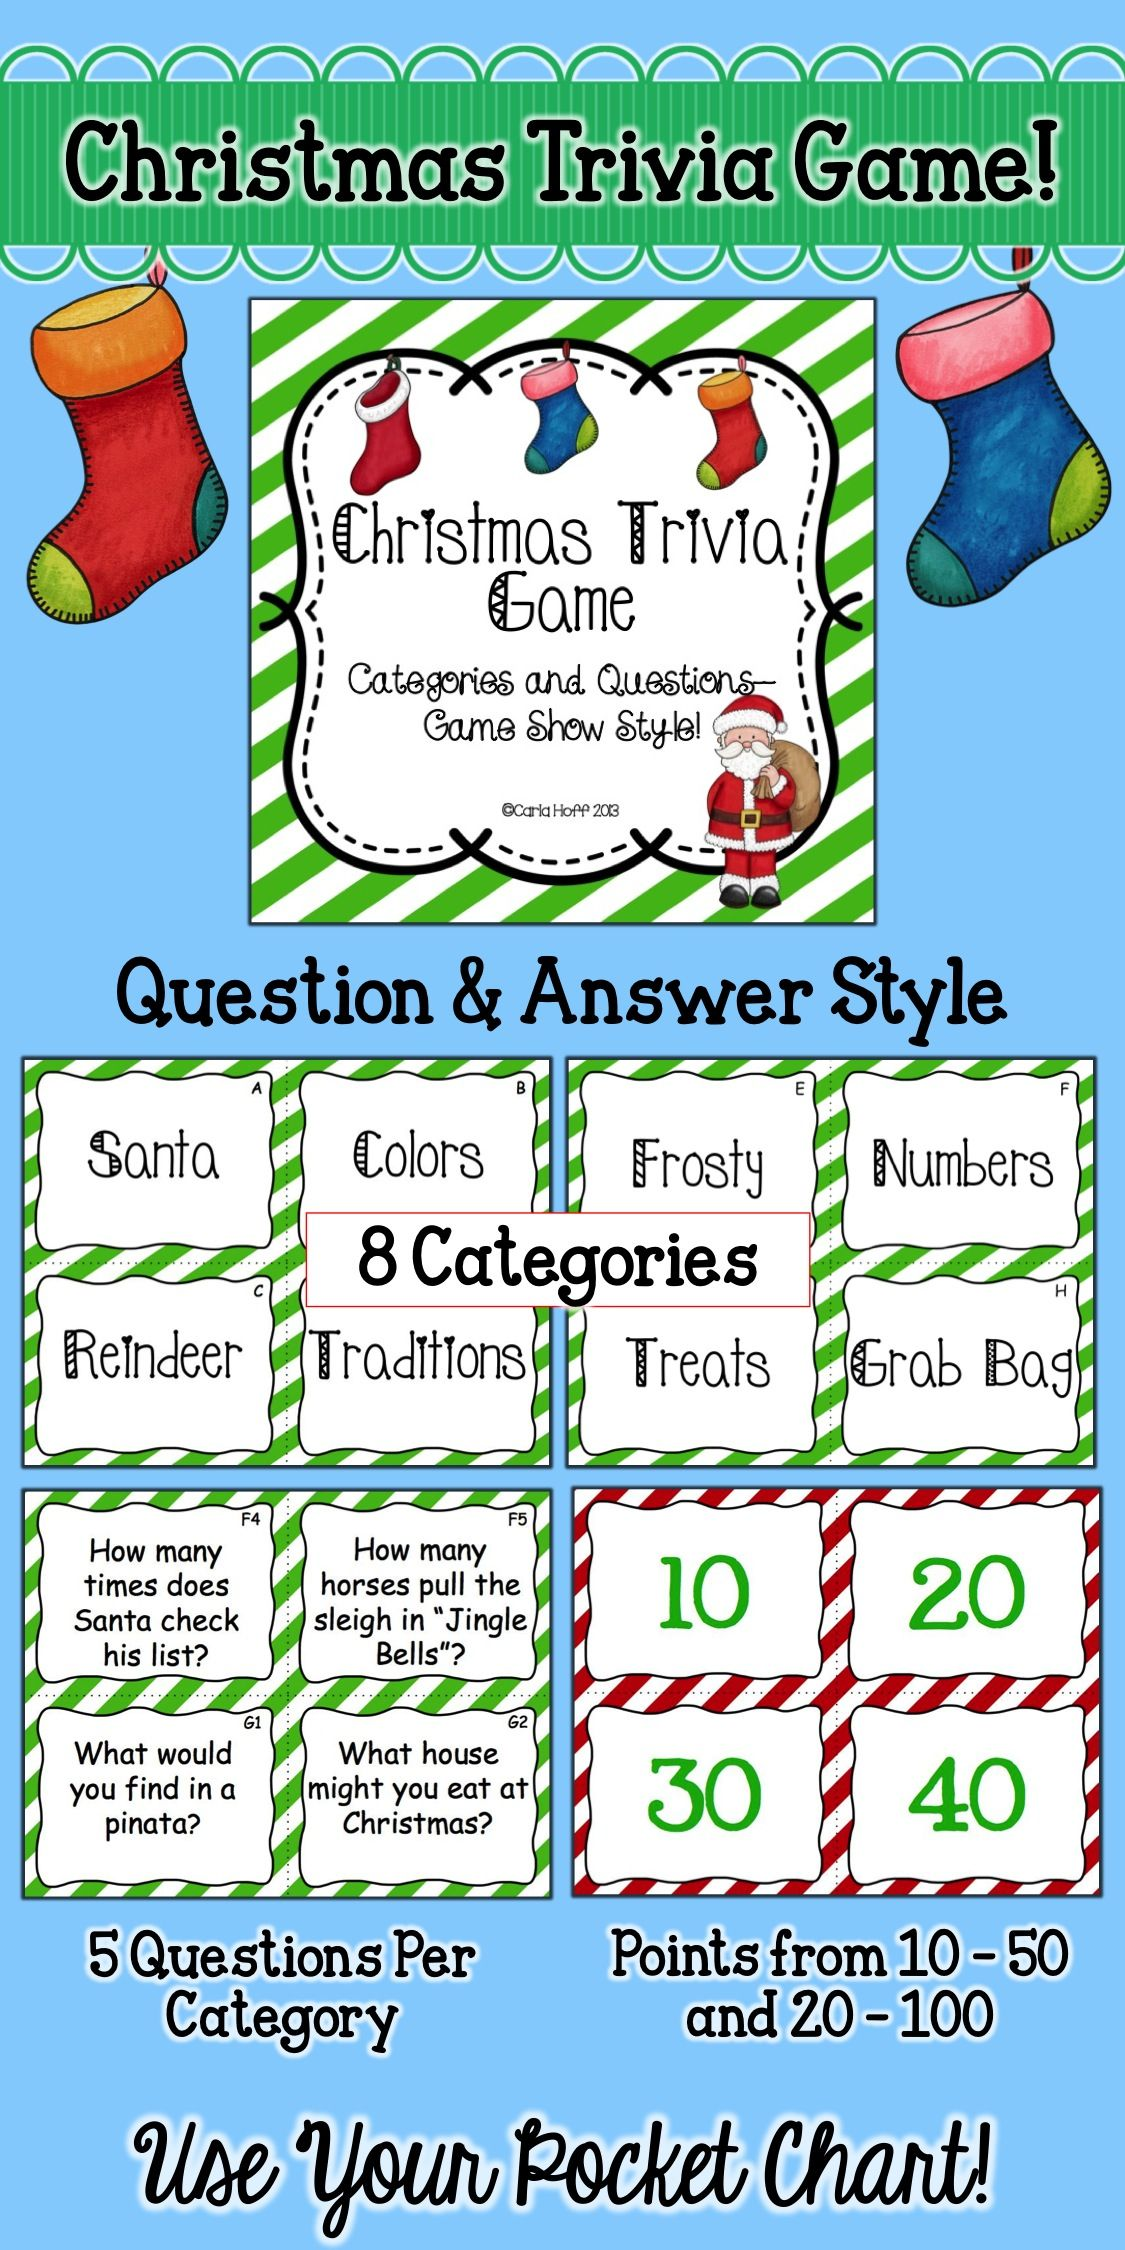 Christmas Trivia Game Categories And Questions Game Show